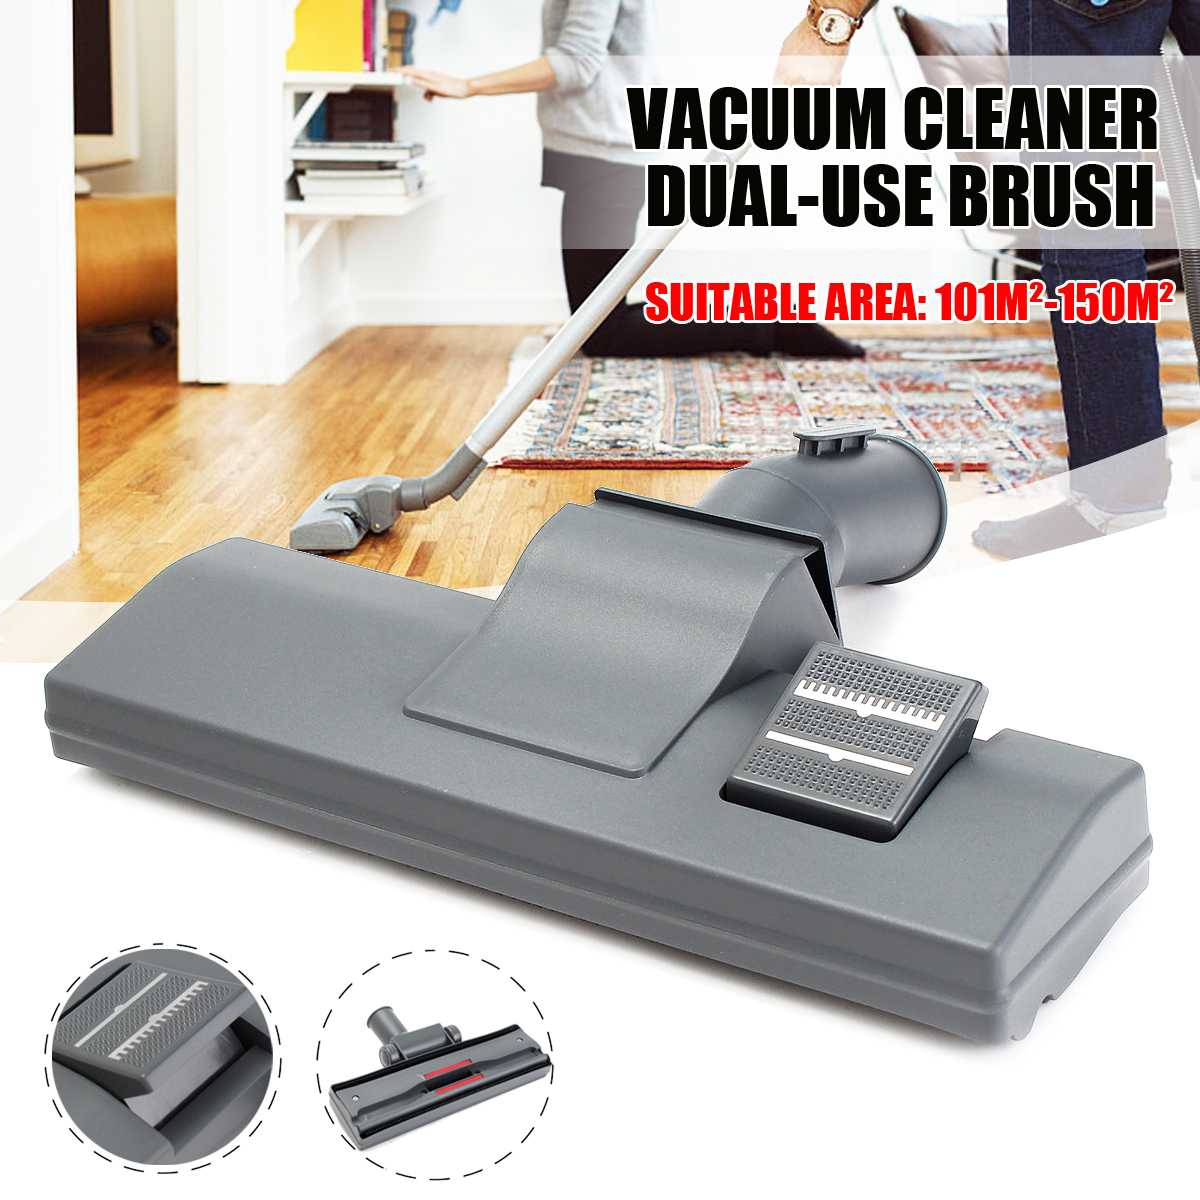 Hard Floor Brush and Rug Combo Attachment Tool for Kirby Vacuum Cleaner